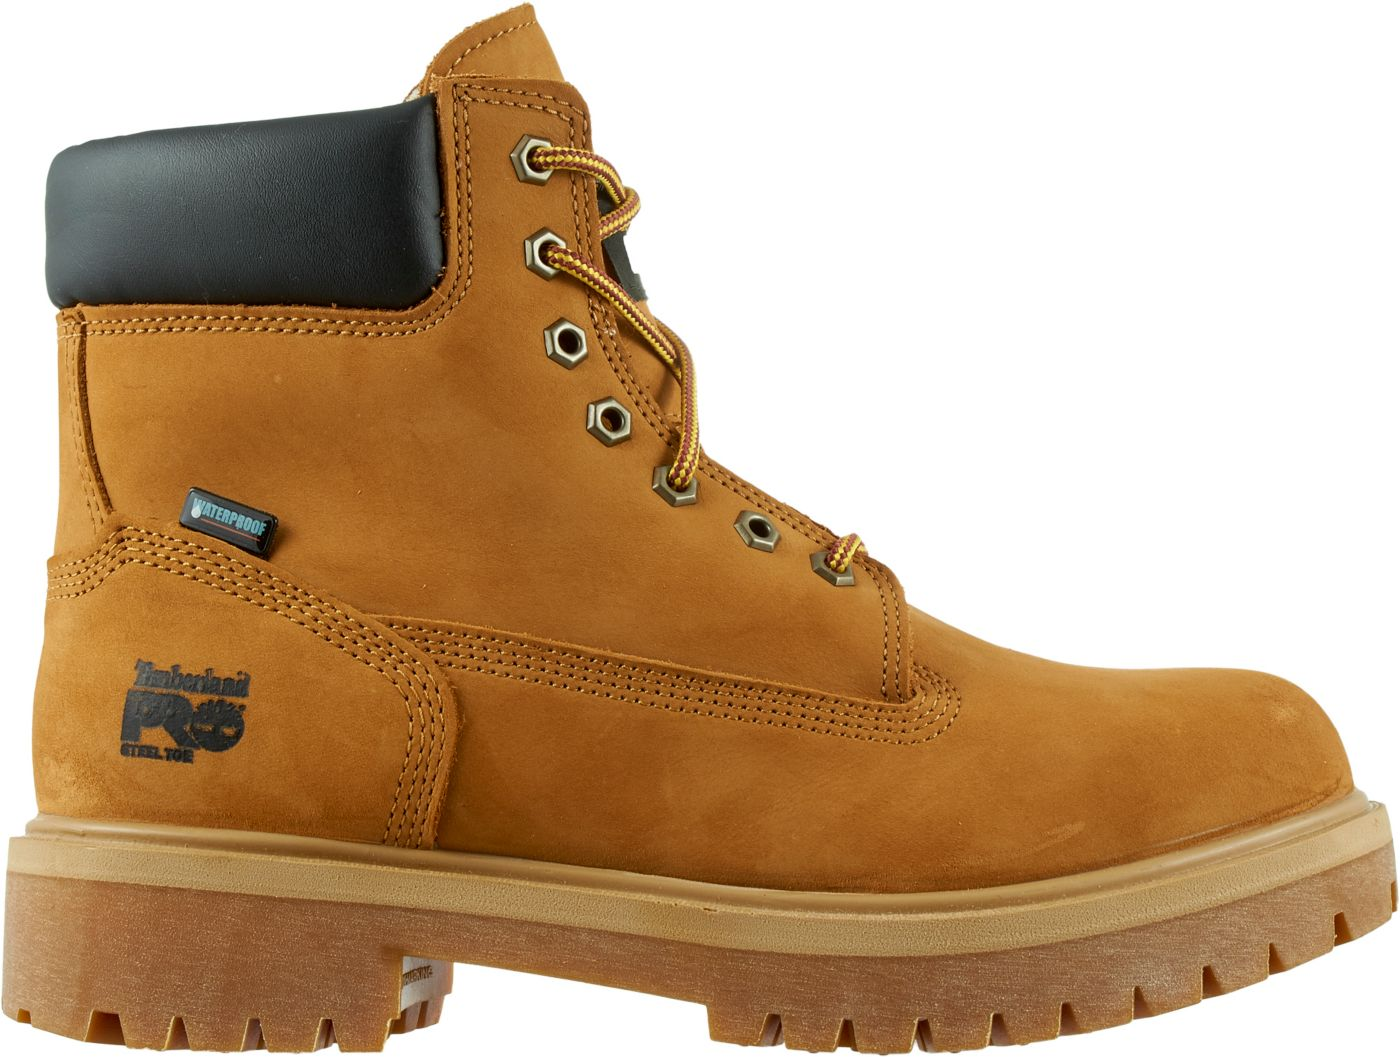 "Timberland Men's PRO Direct Attach 6"" 200g Insulated Steel Toe Boots"